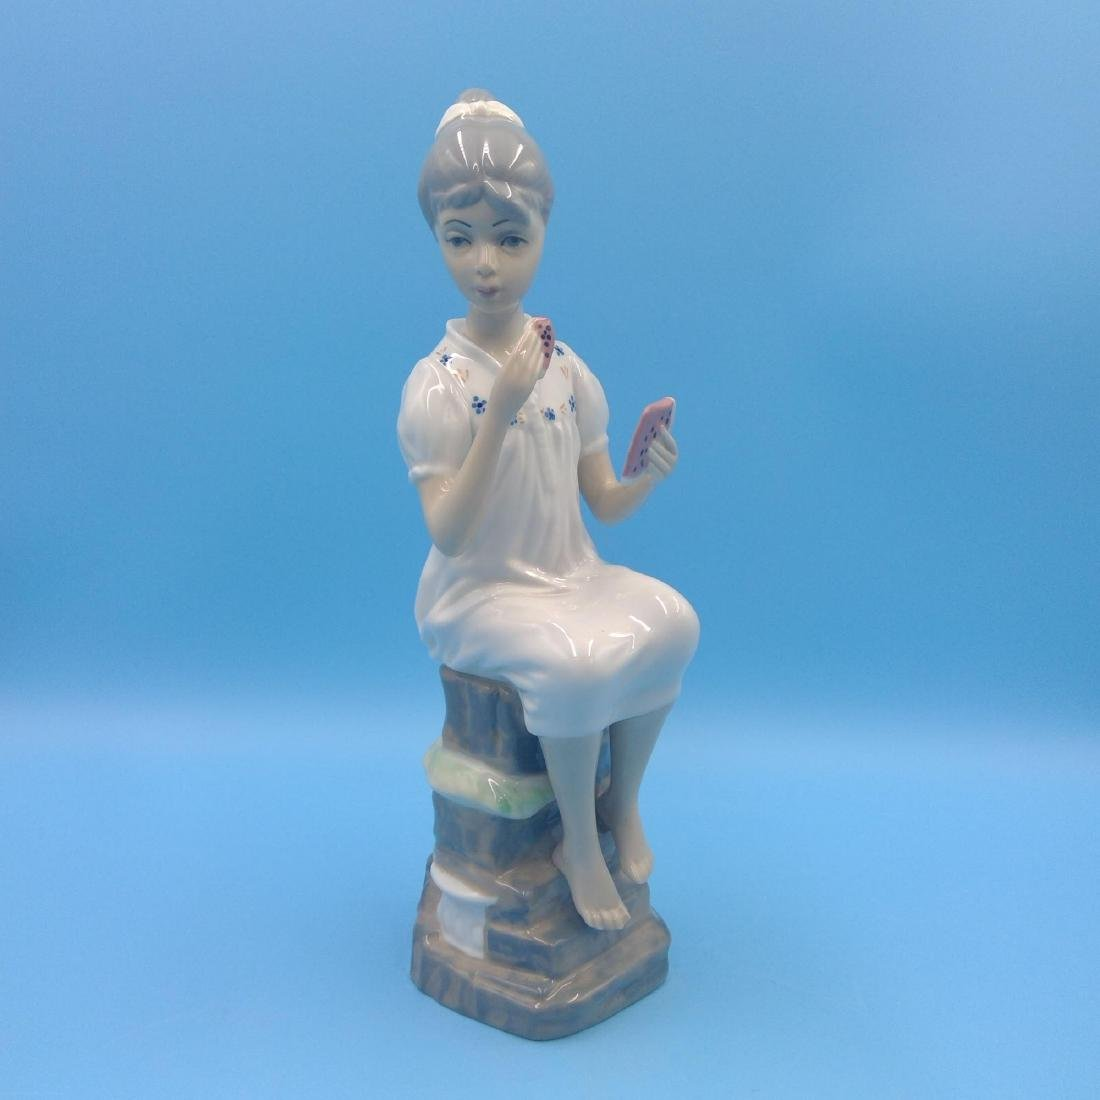 GROUP OF 3 SPANISH PORCELAIN FIGURINES - 2